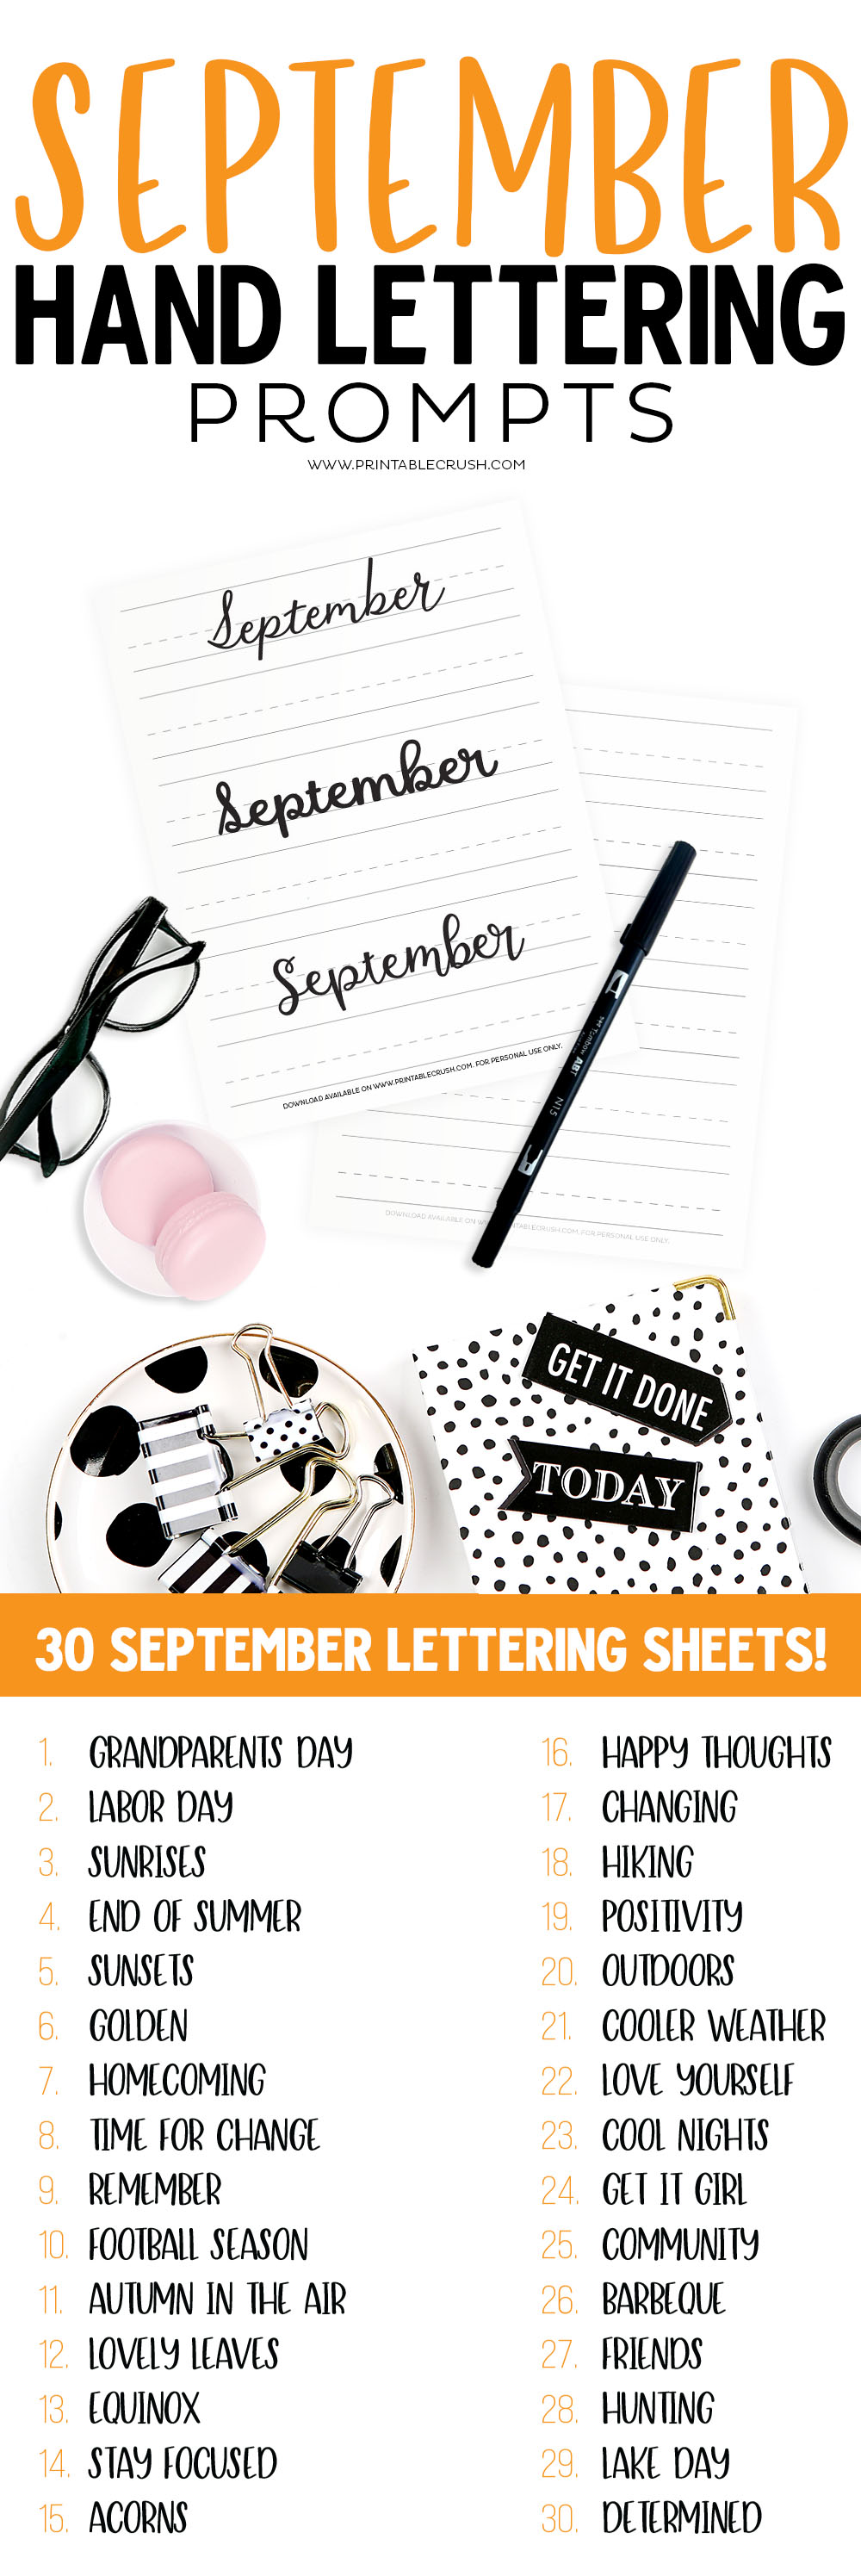 Use these September Hand lettering Prompts to practice lettering skills every day this month!